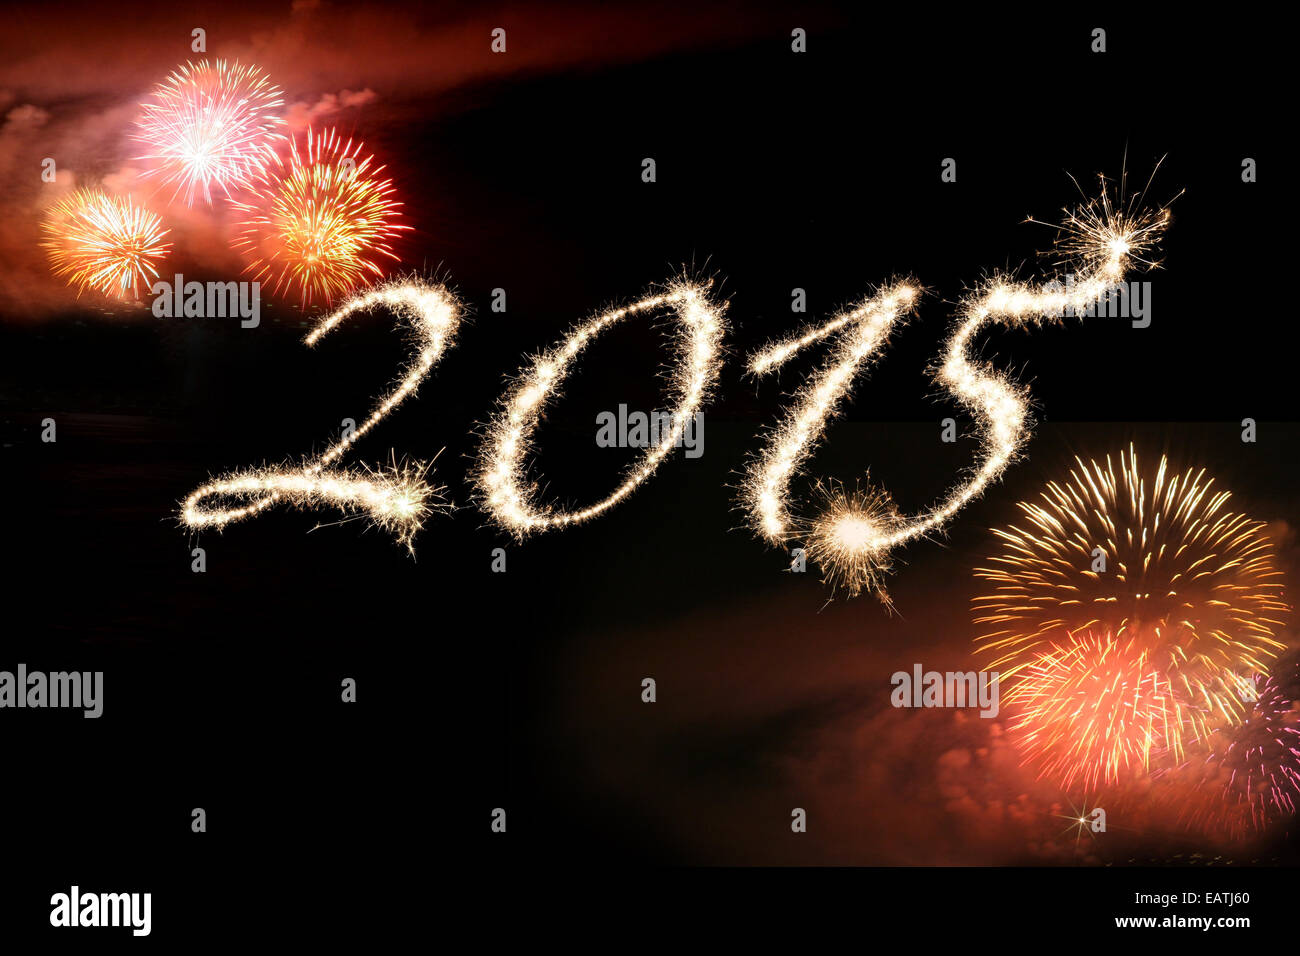 new years eve 2015 stock photos amp new years eve 2015 stock